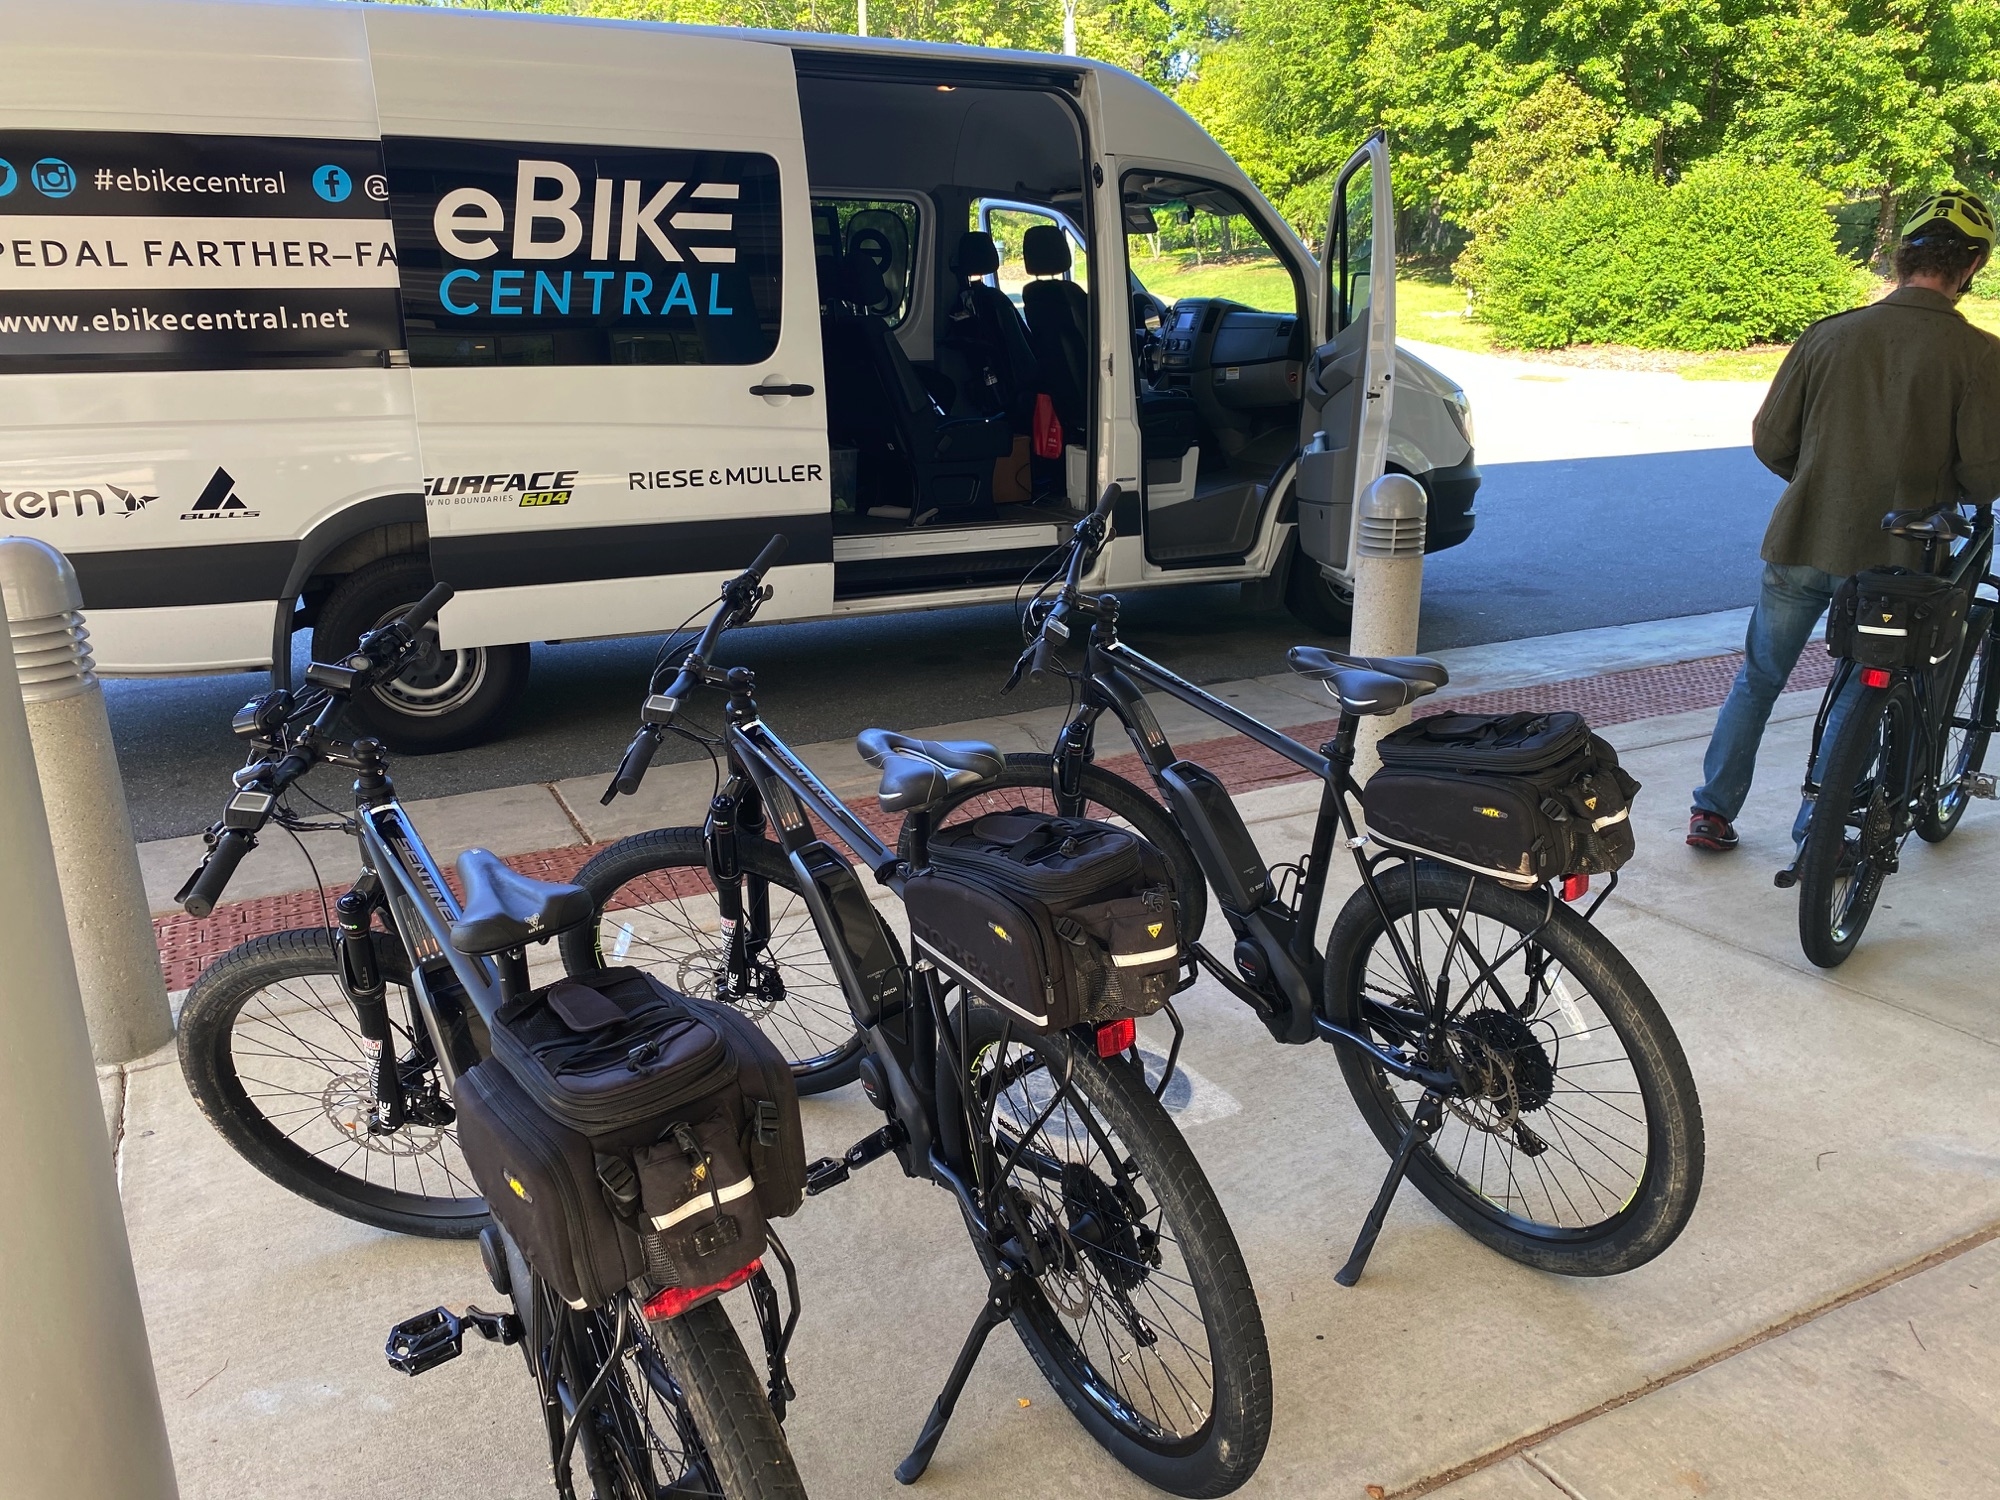 Chapel Hill Police Department service by eBike Central, Chapel Hill NC